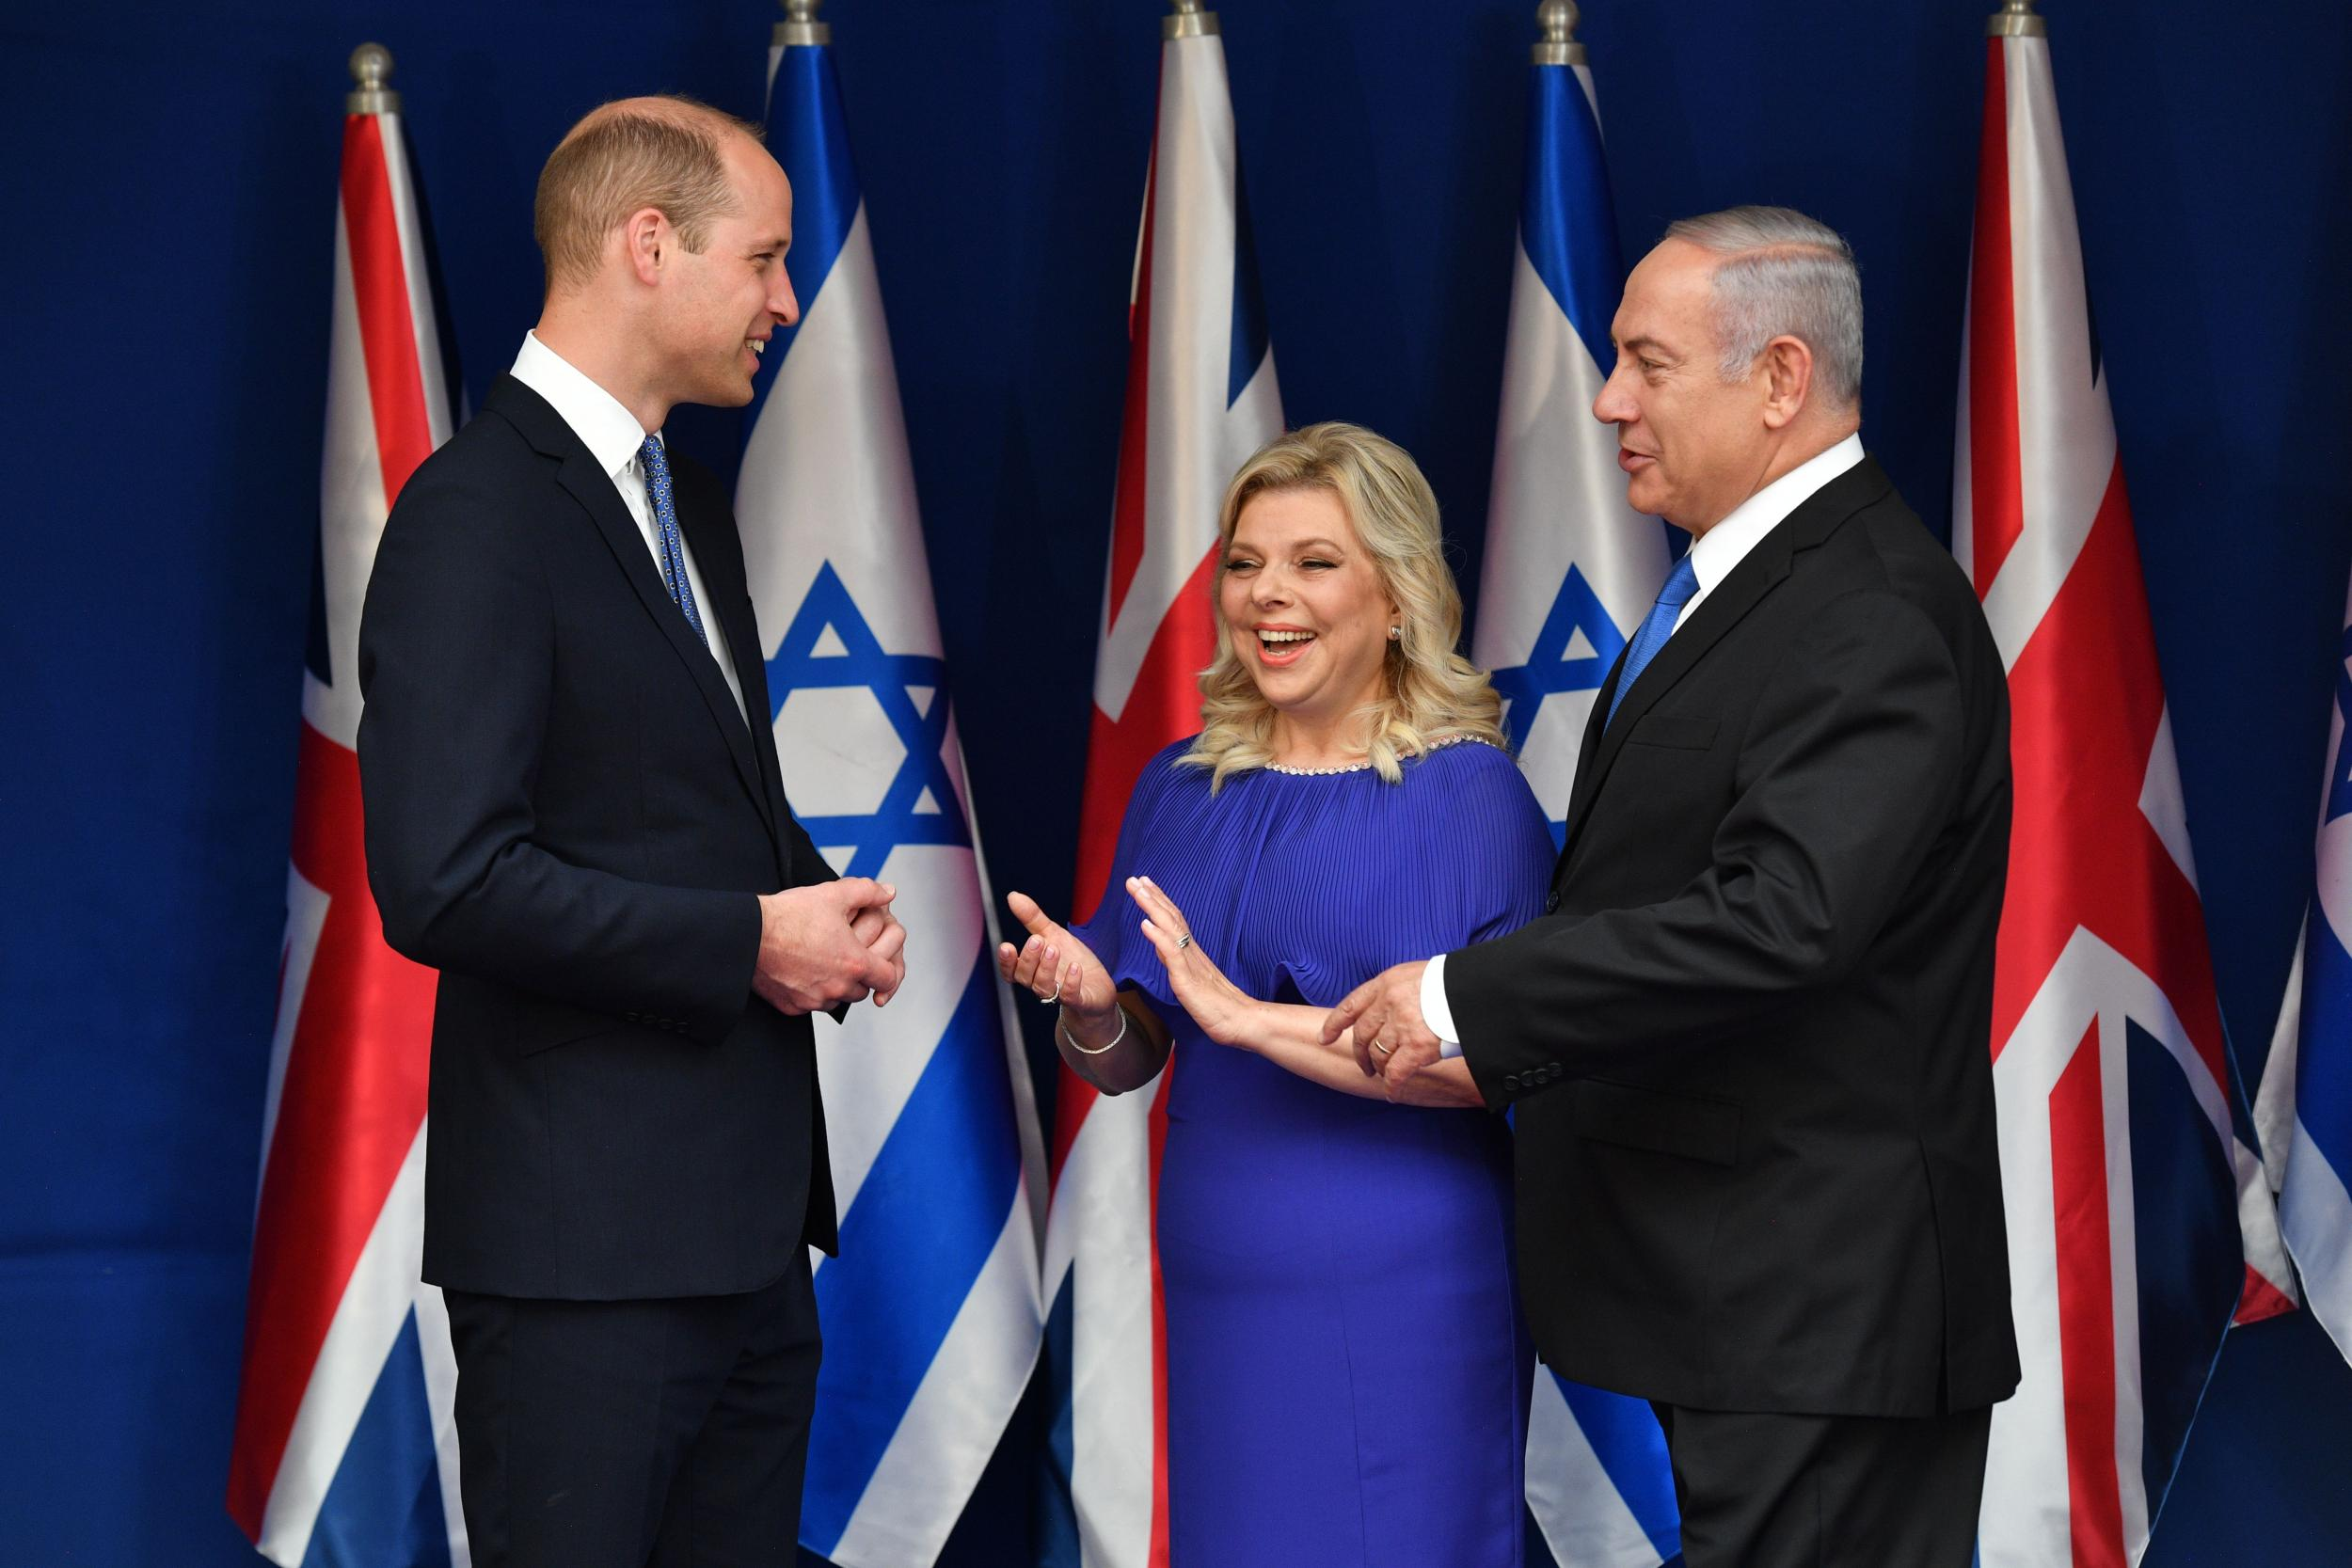 Prince William embarks on first ever royal visit to Israel and Palestinian territories